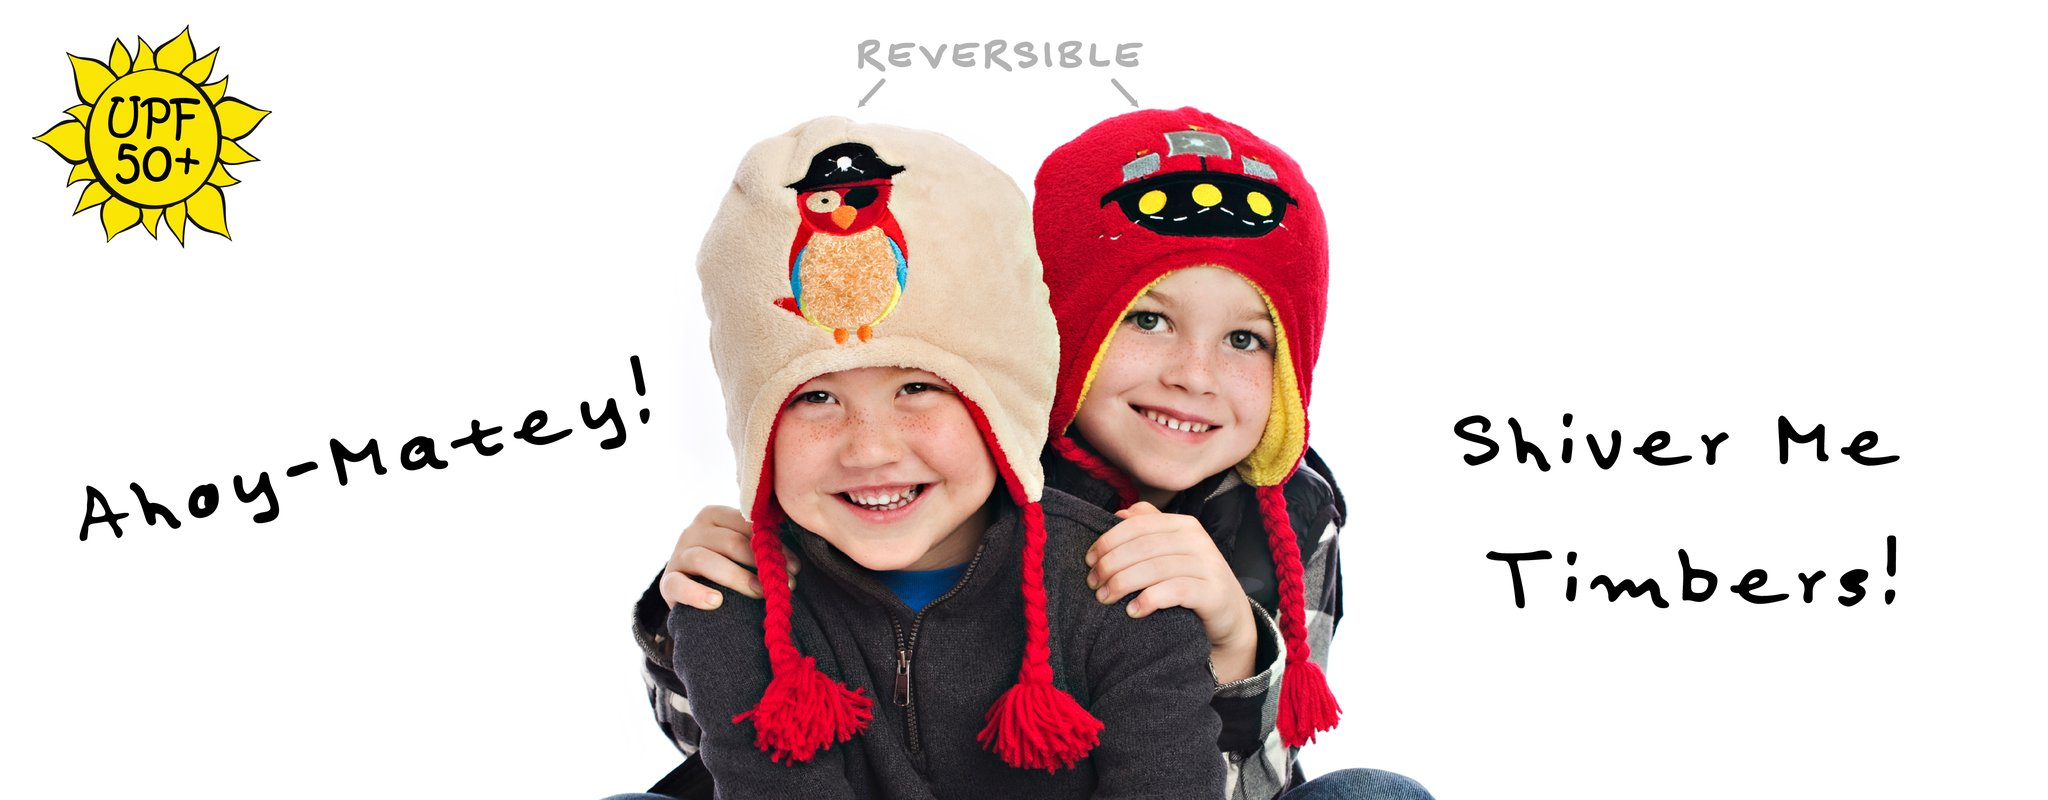 Reversible Pirate Ship/Parrot